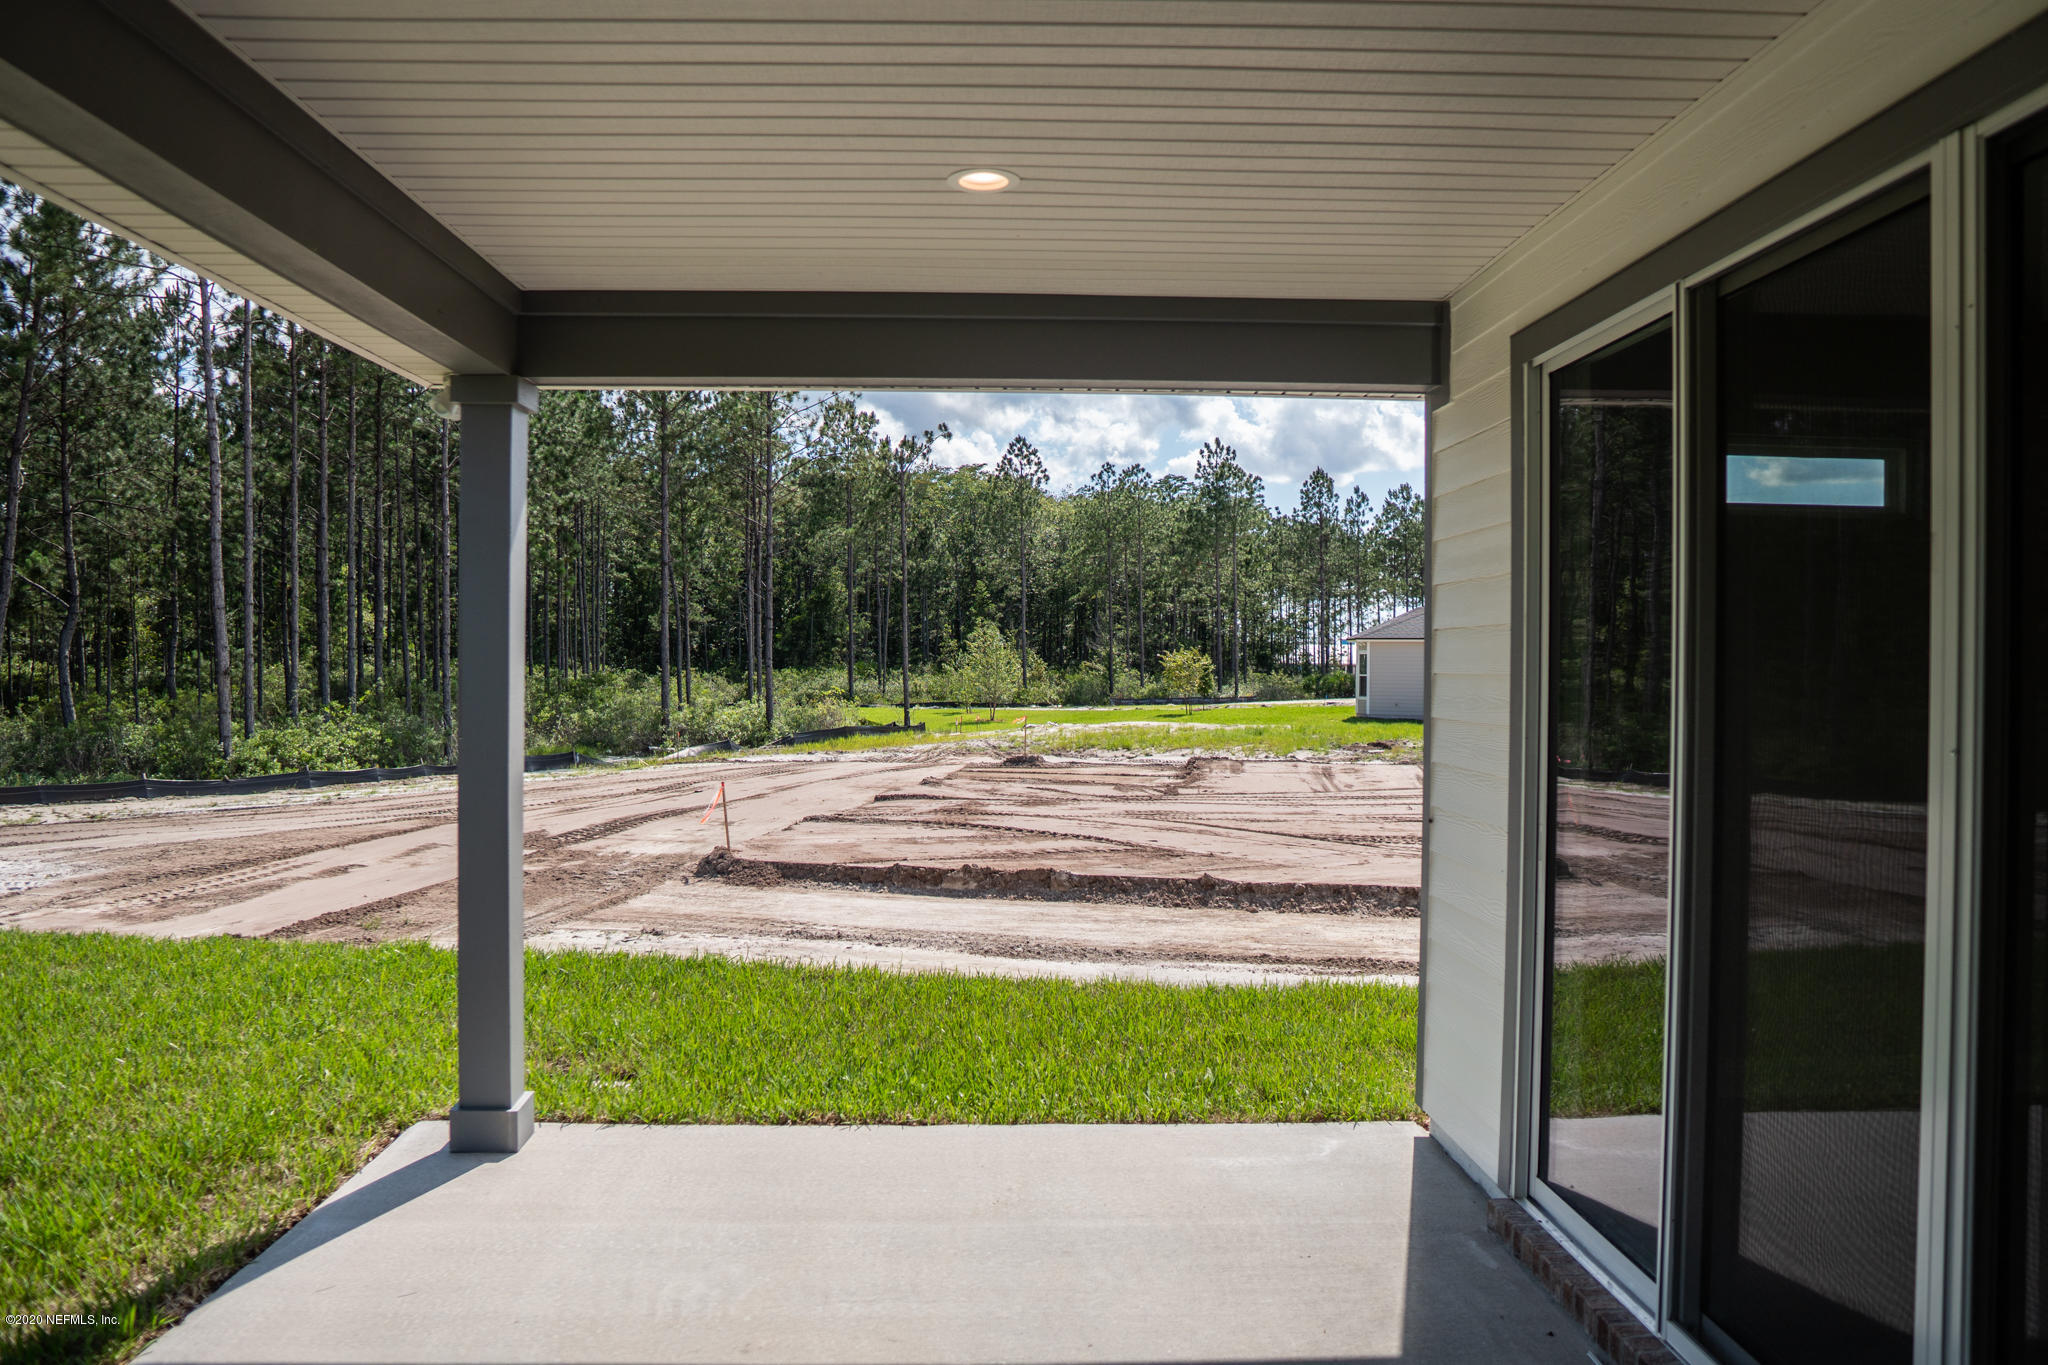 192 SILVER PINE, ST AUGUSTINE, FLORIDA 32092, 4 Bedrooms Bedrooms, ,2 BathroomsBathrooms,Residential,For sale,SILVER PINE,1044948